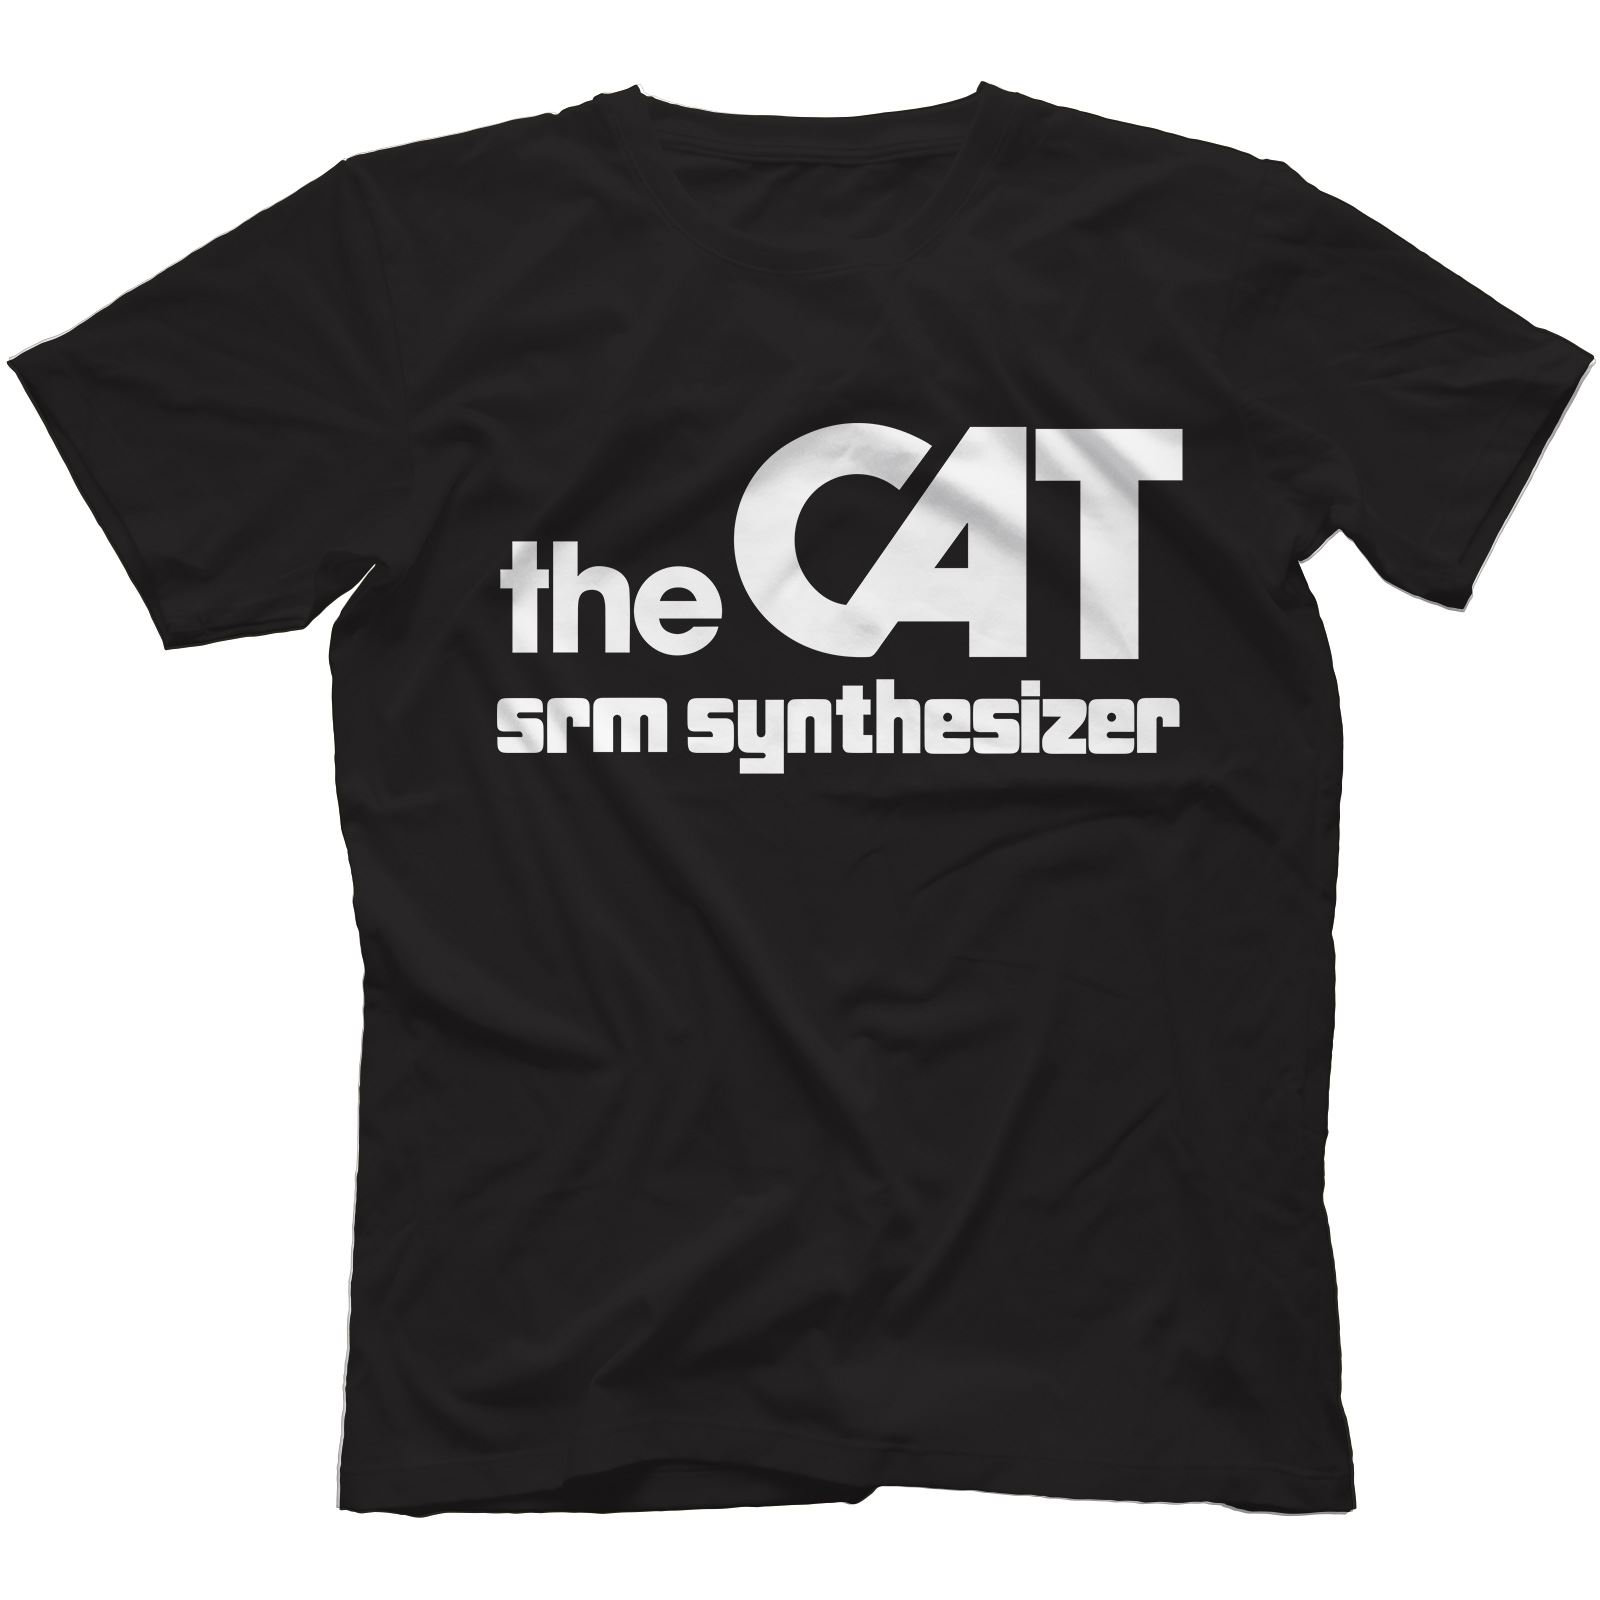 The-Cat-SRM-Synthesiser-T-Shirt-100-Cotton-Retro-Analog-Arp-Odyssey Indexbild 6